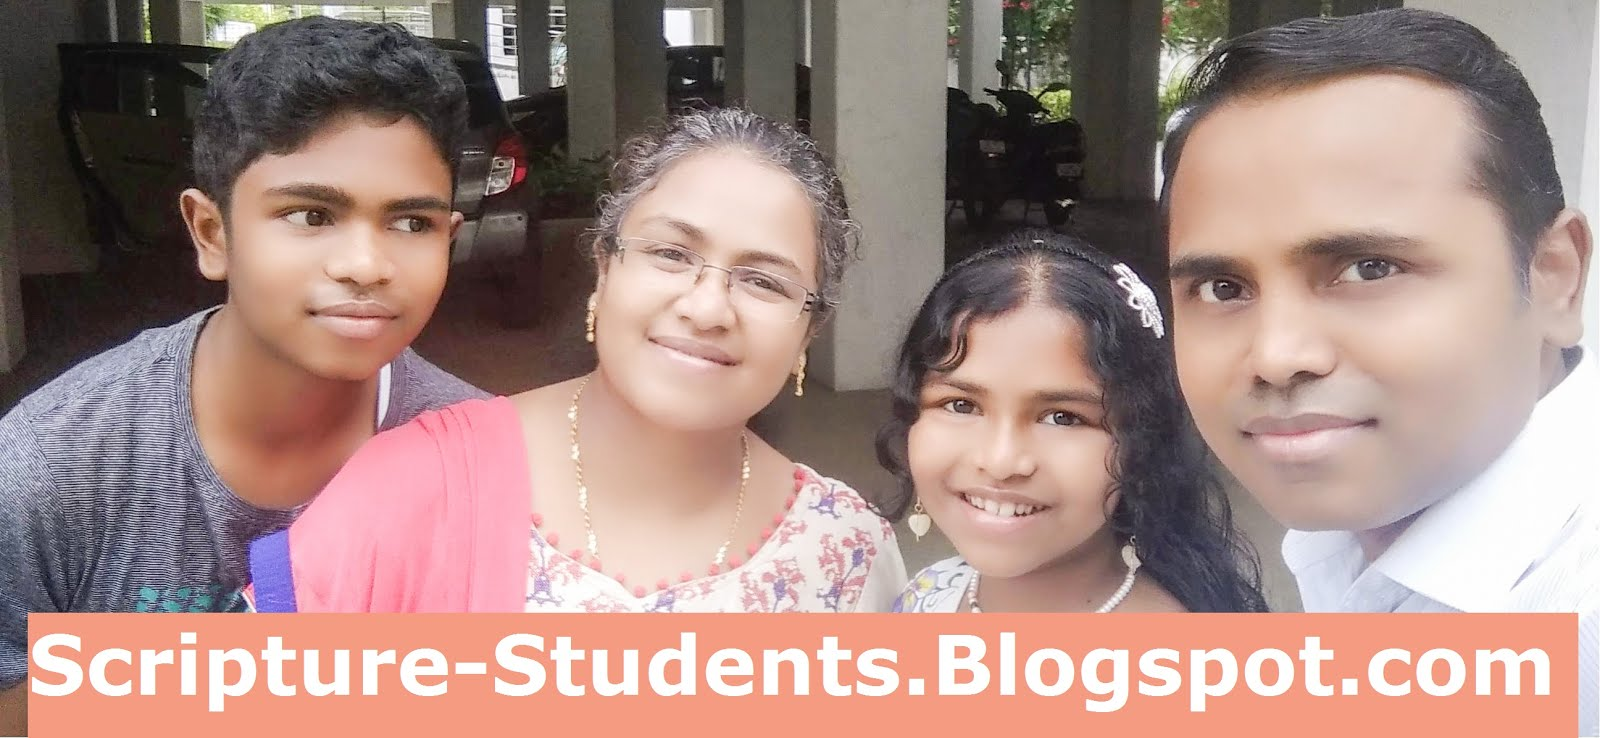 Scripture-Students.Blogspot.com